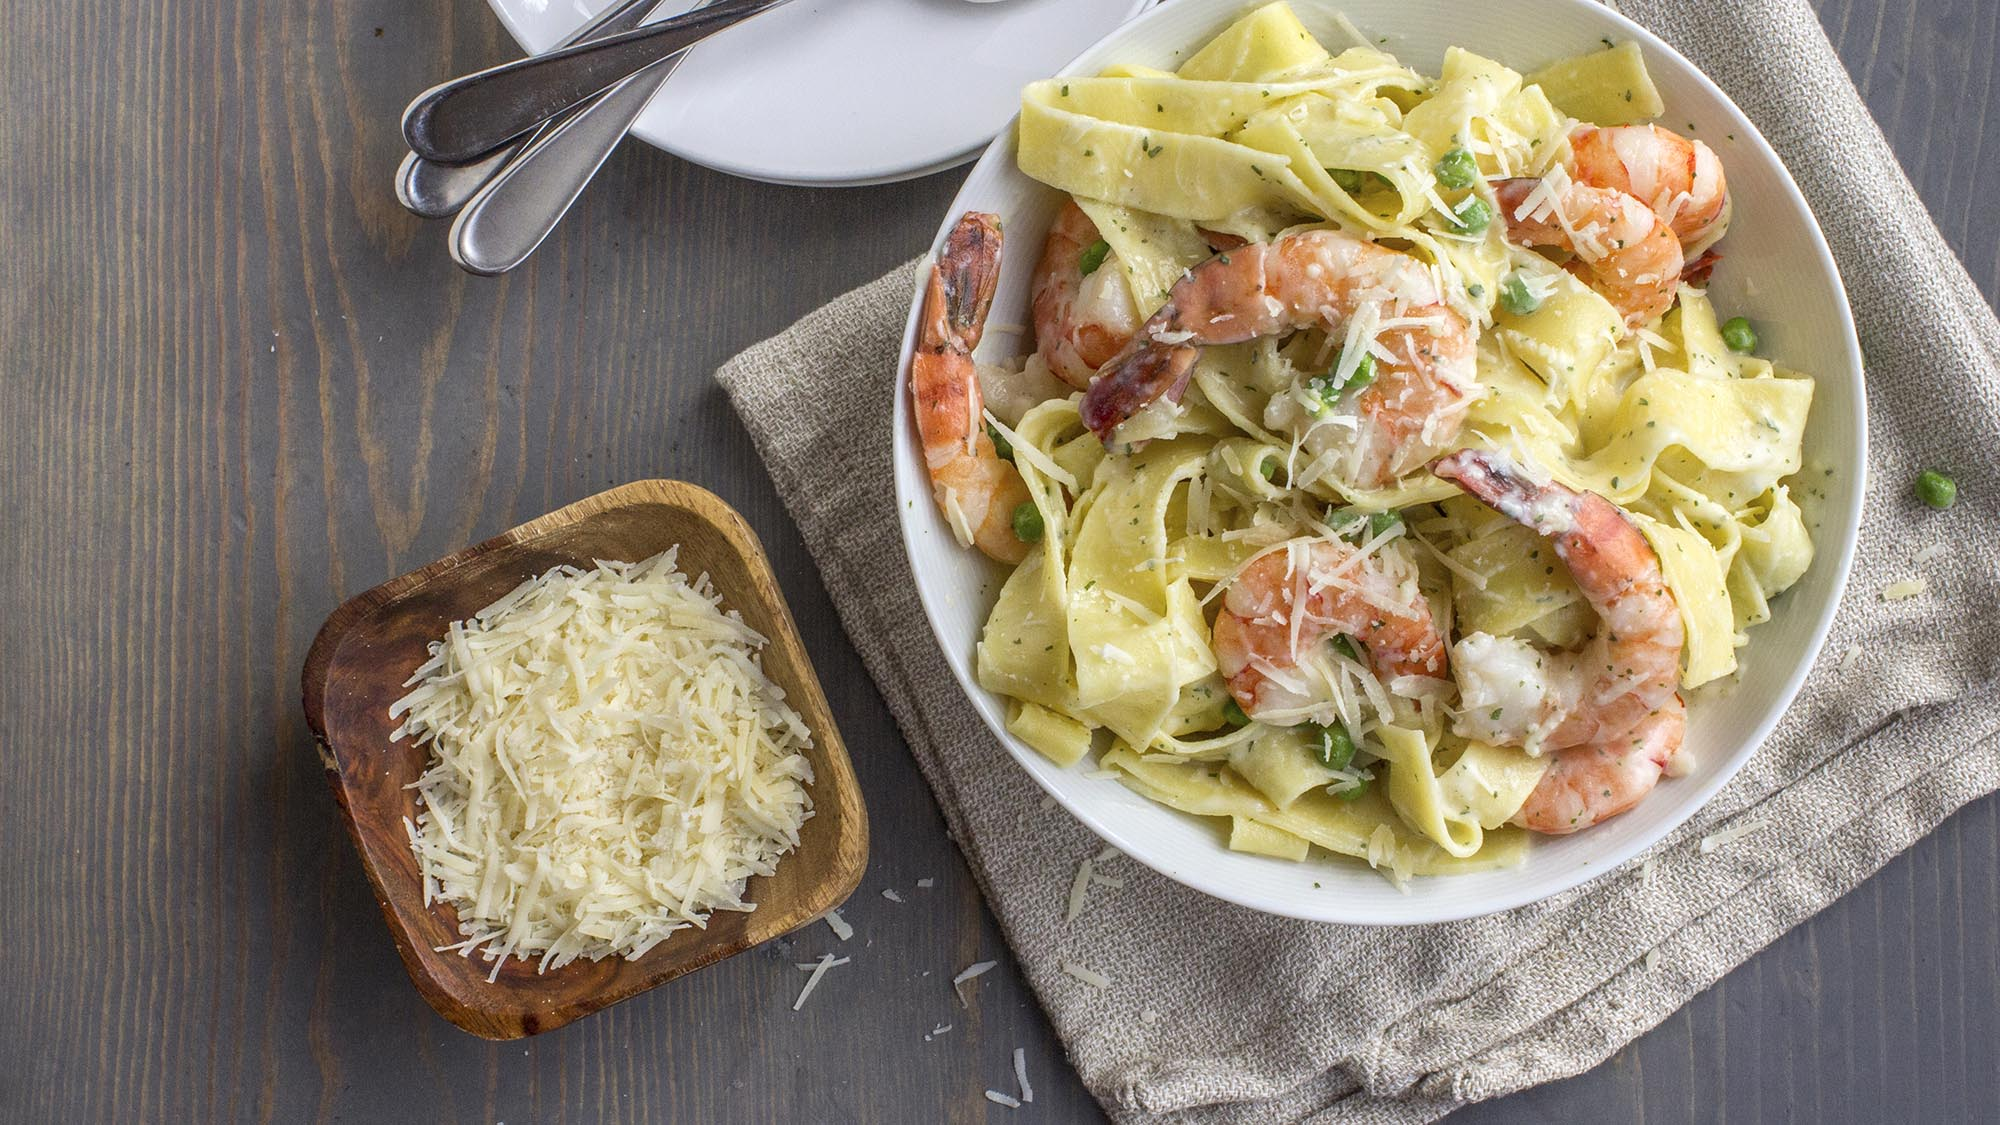 Basil_Shrimp_and_Pasta_Alfredo_2000x1125.jpg